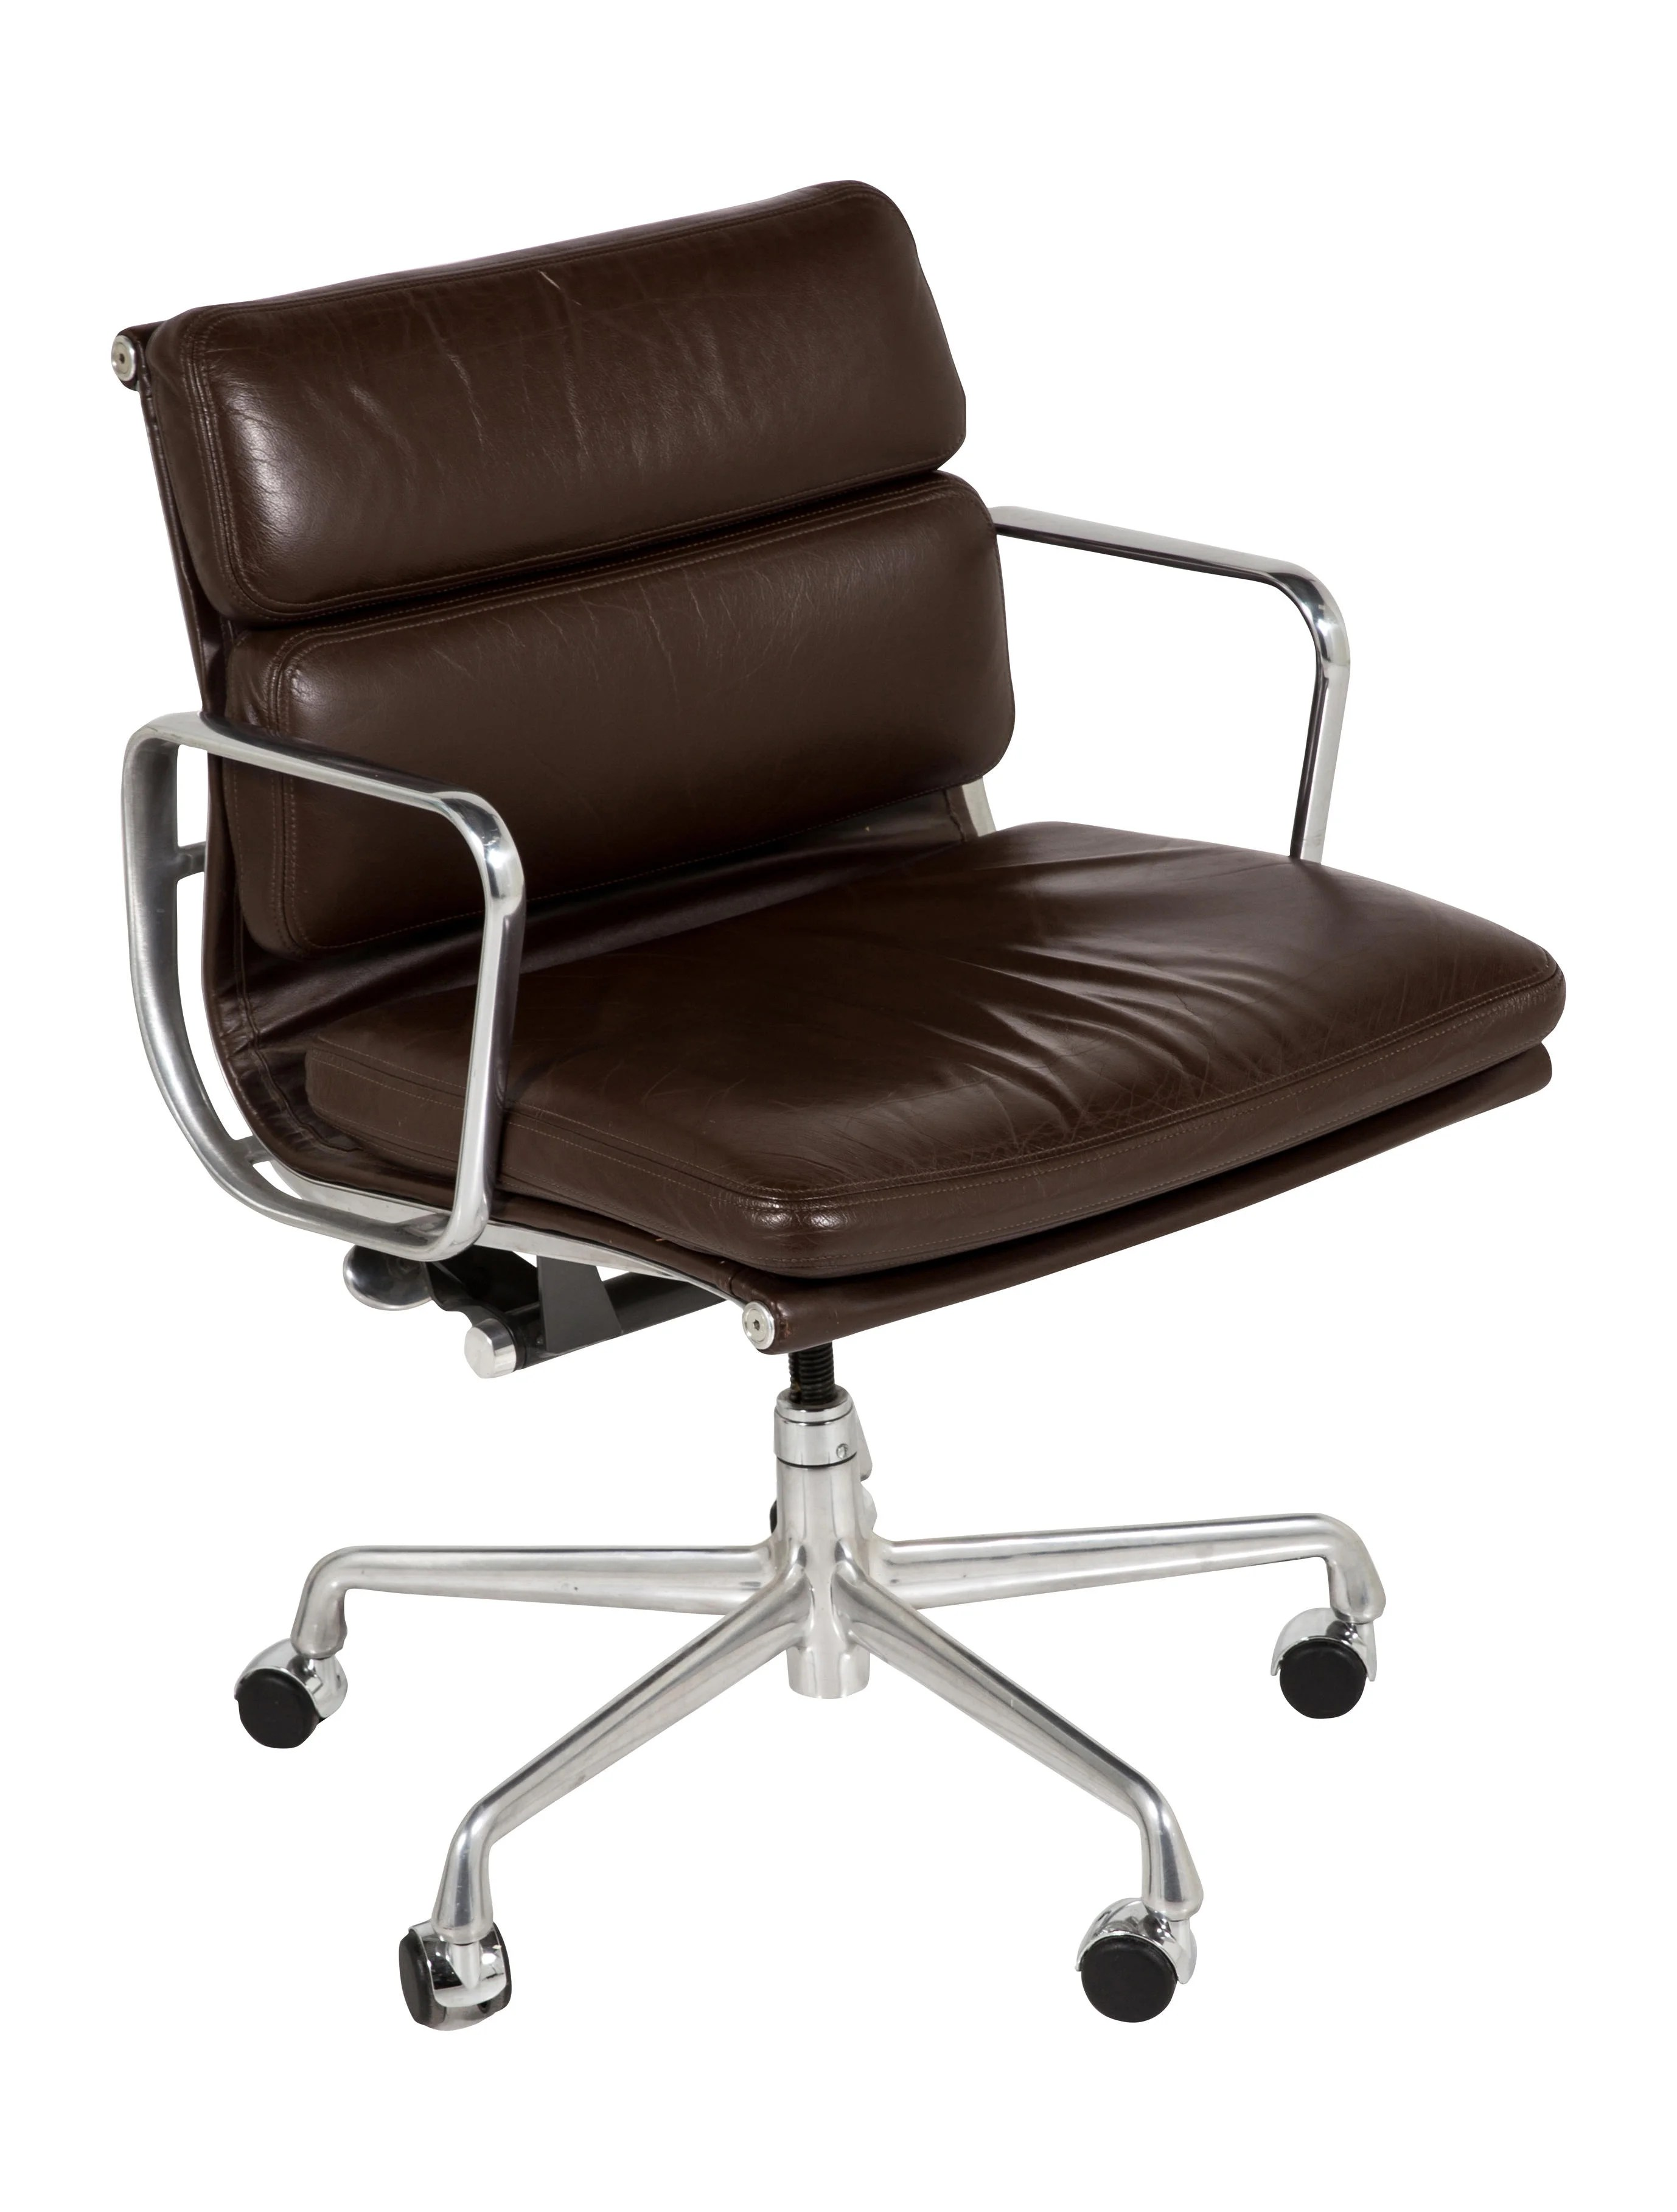 Eames Soft Pad Management Chair Herman Miller Eames Soft Pad Management Chair Furniture